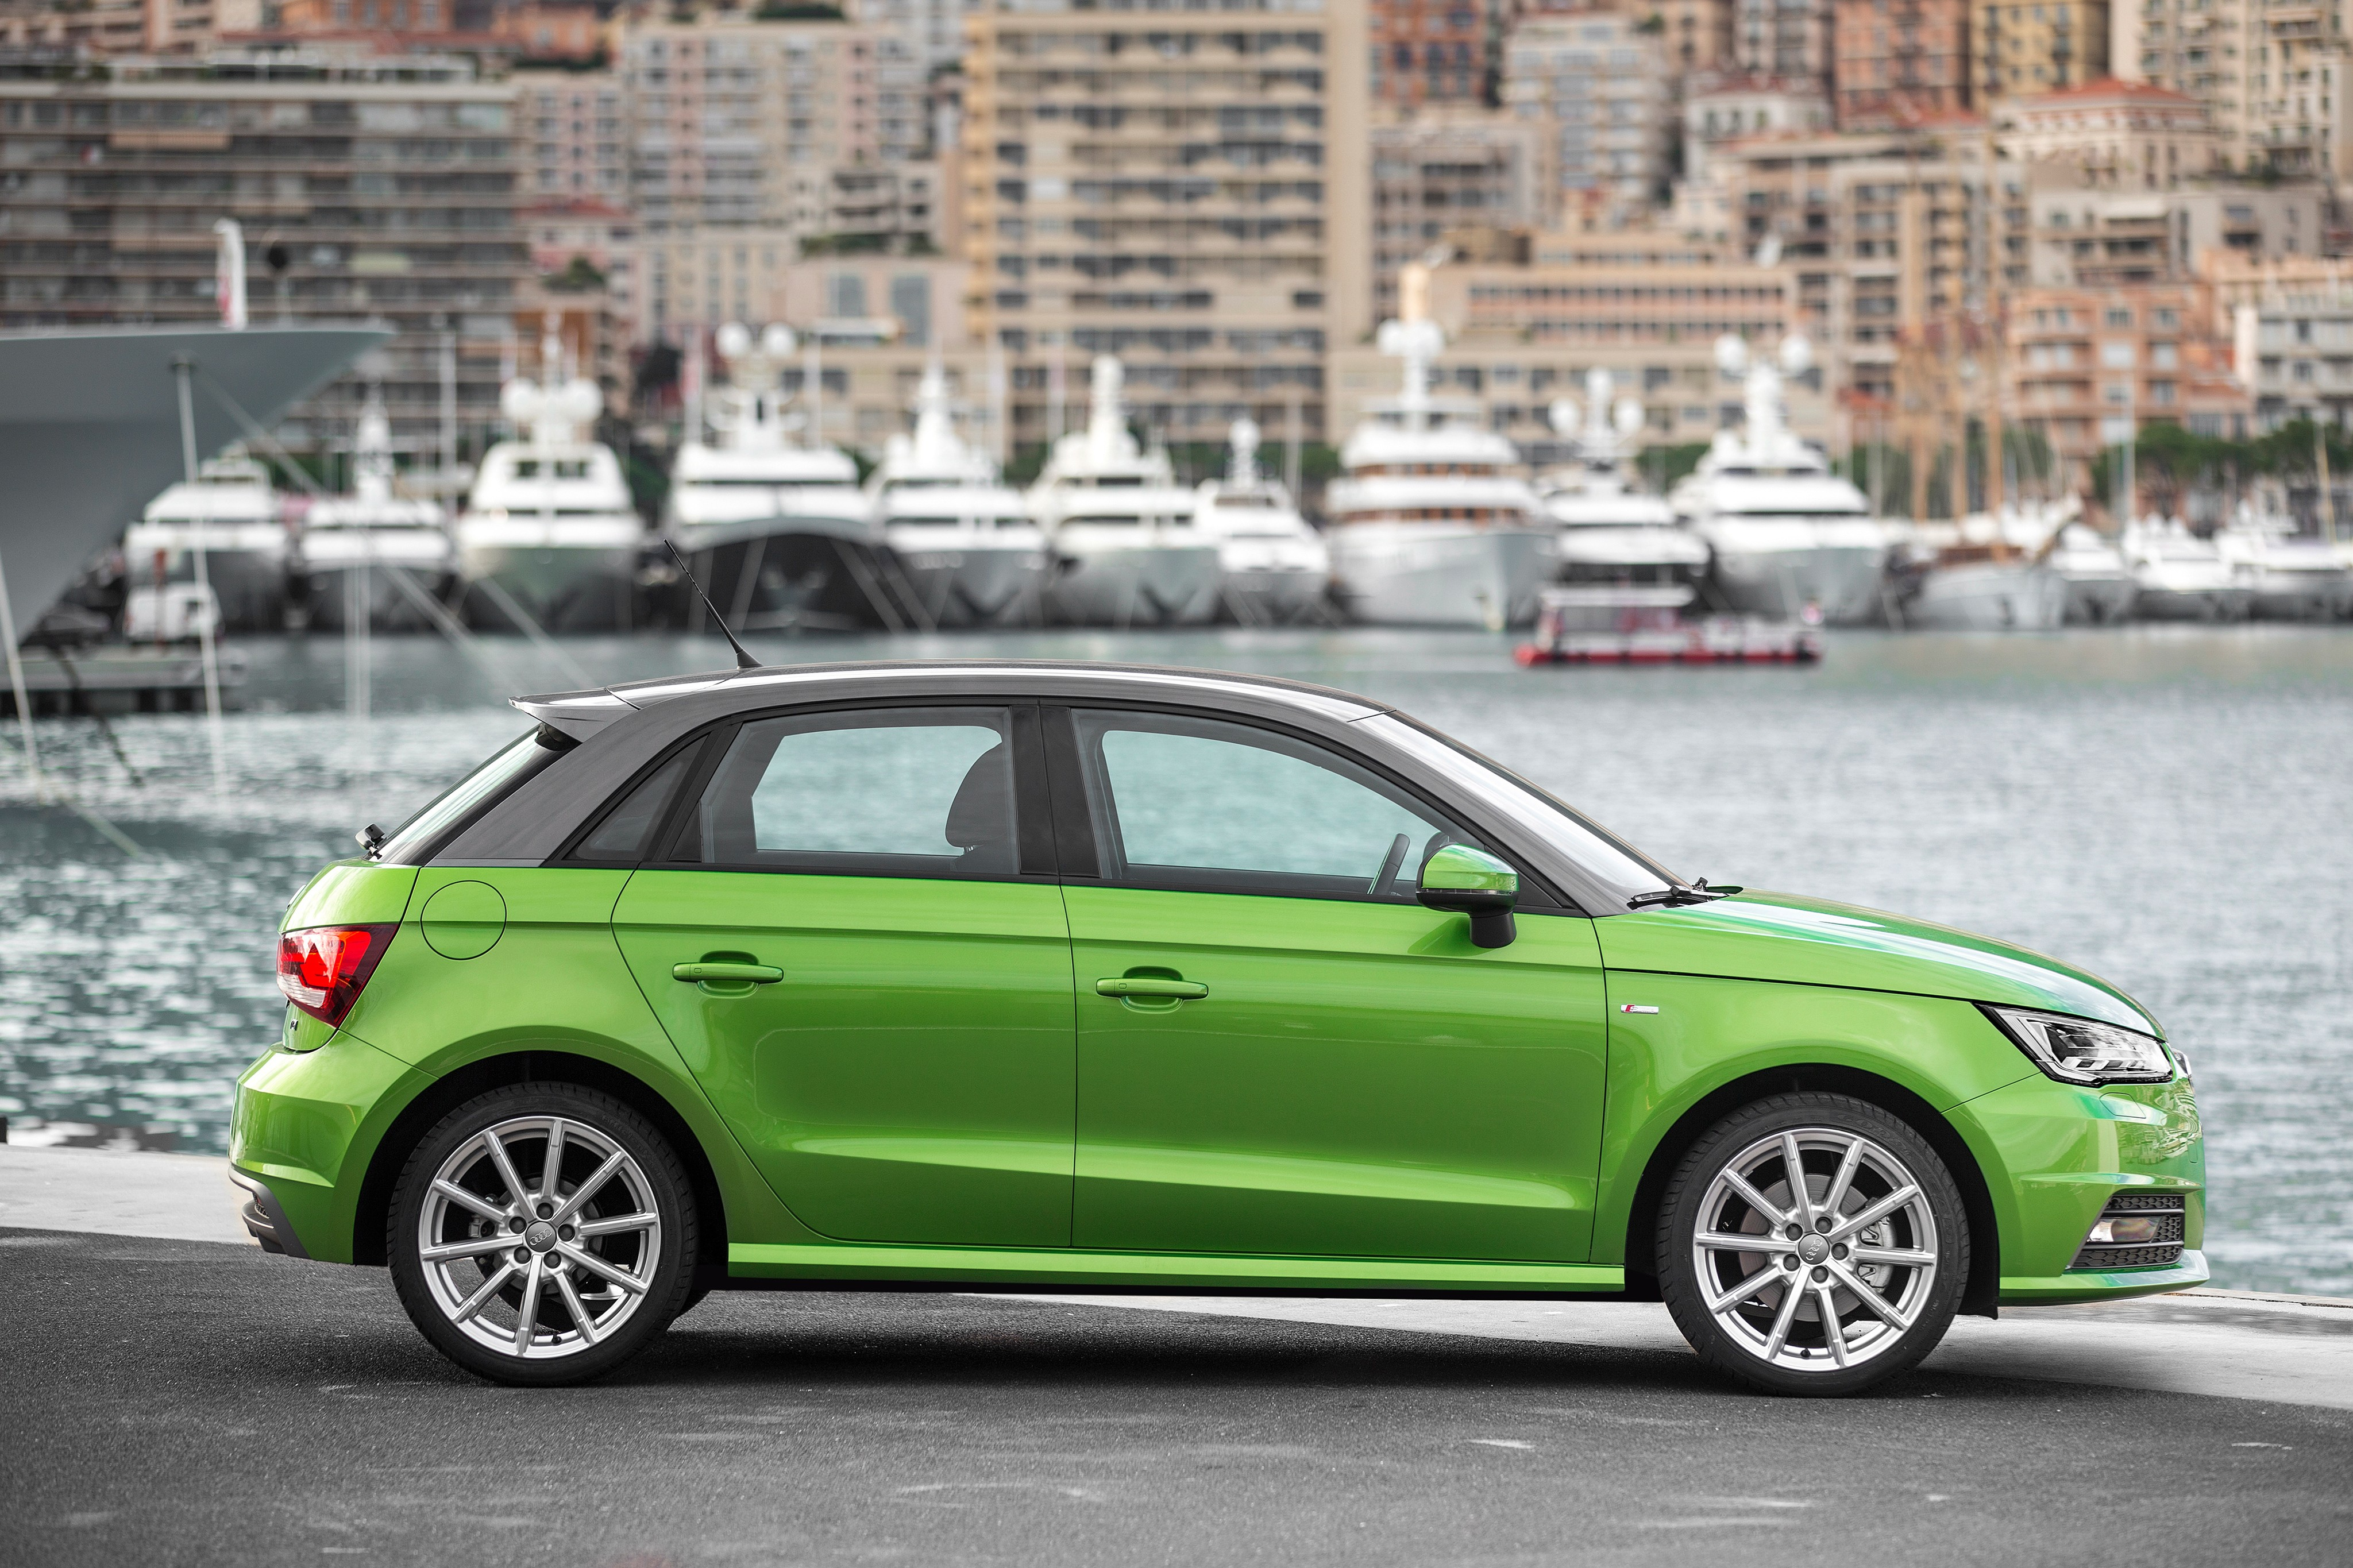 audi a1 sportback 5 doors specs 2012 2013 2014 2015 2016 2017 2018 autoevolution. Black Bedroom Furniture Sets. Home Design Ideas